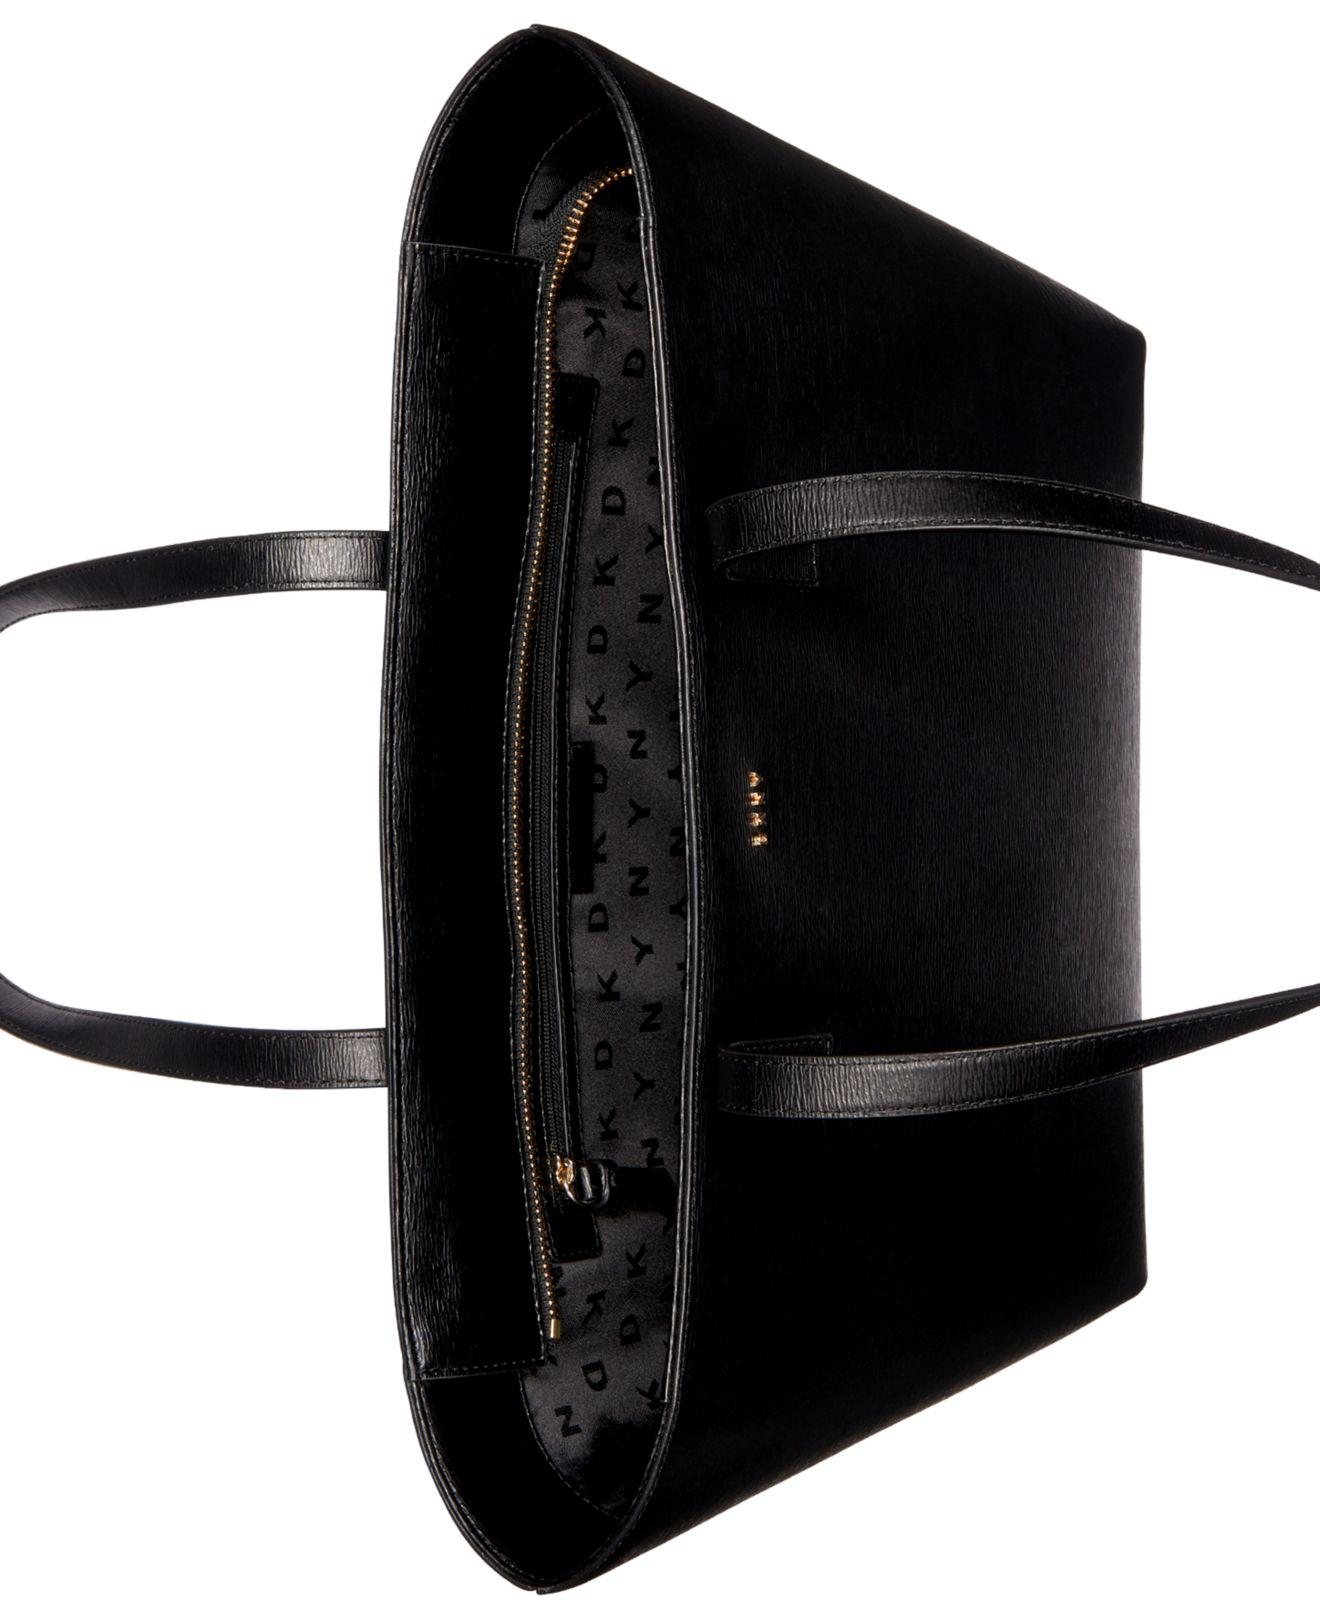 Lyst - DKNY Bryant Large Tote in Black f99c3366d407a